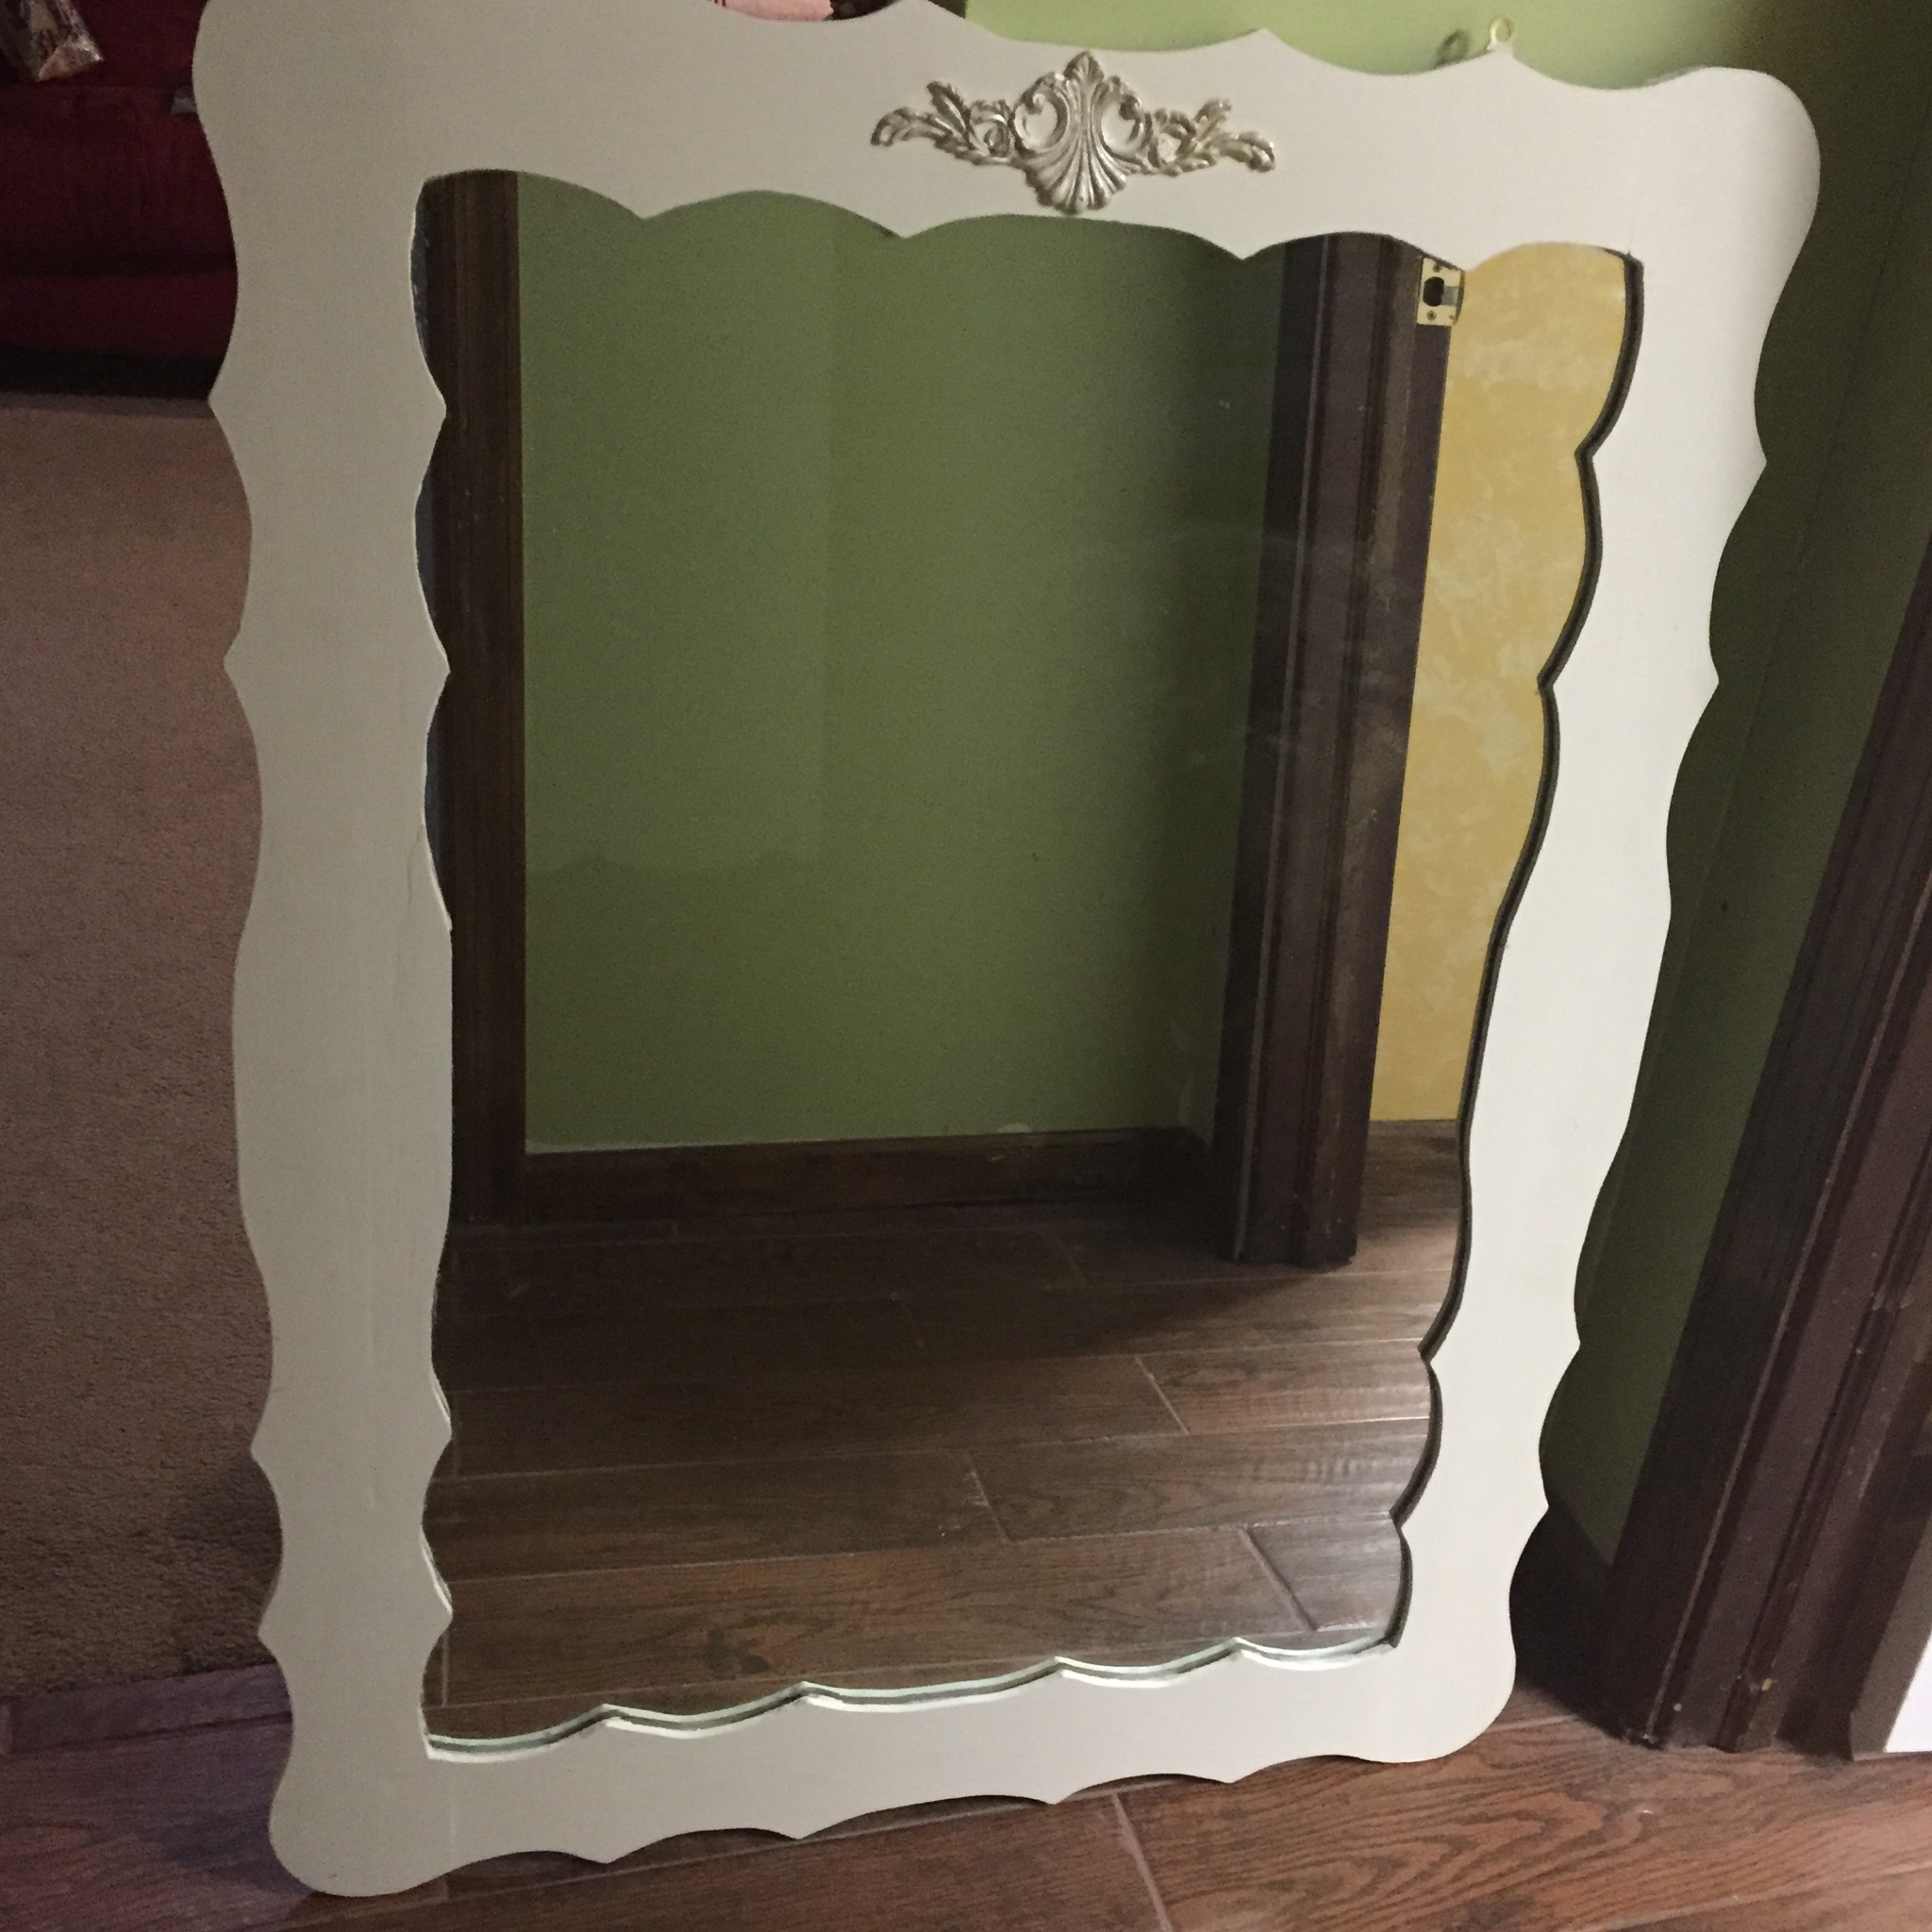 A old mirror that had stickers on it got a makeover to match the rest of the furniture.  The wood Dixie Belle applique , also sold at LaVintage Decor Studio was applied to the top of the mirror and given the Silver Shine treatment.